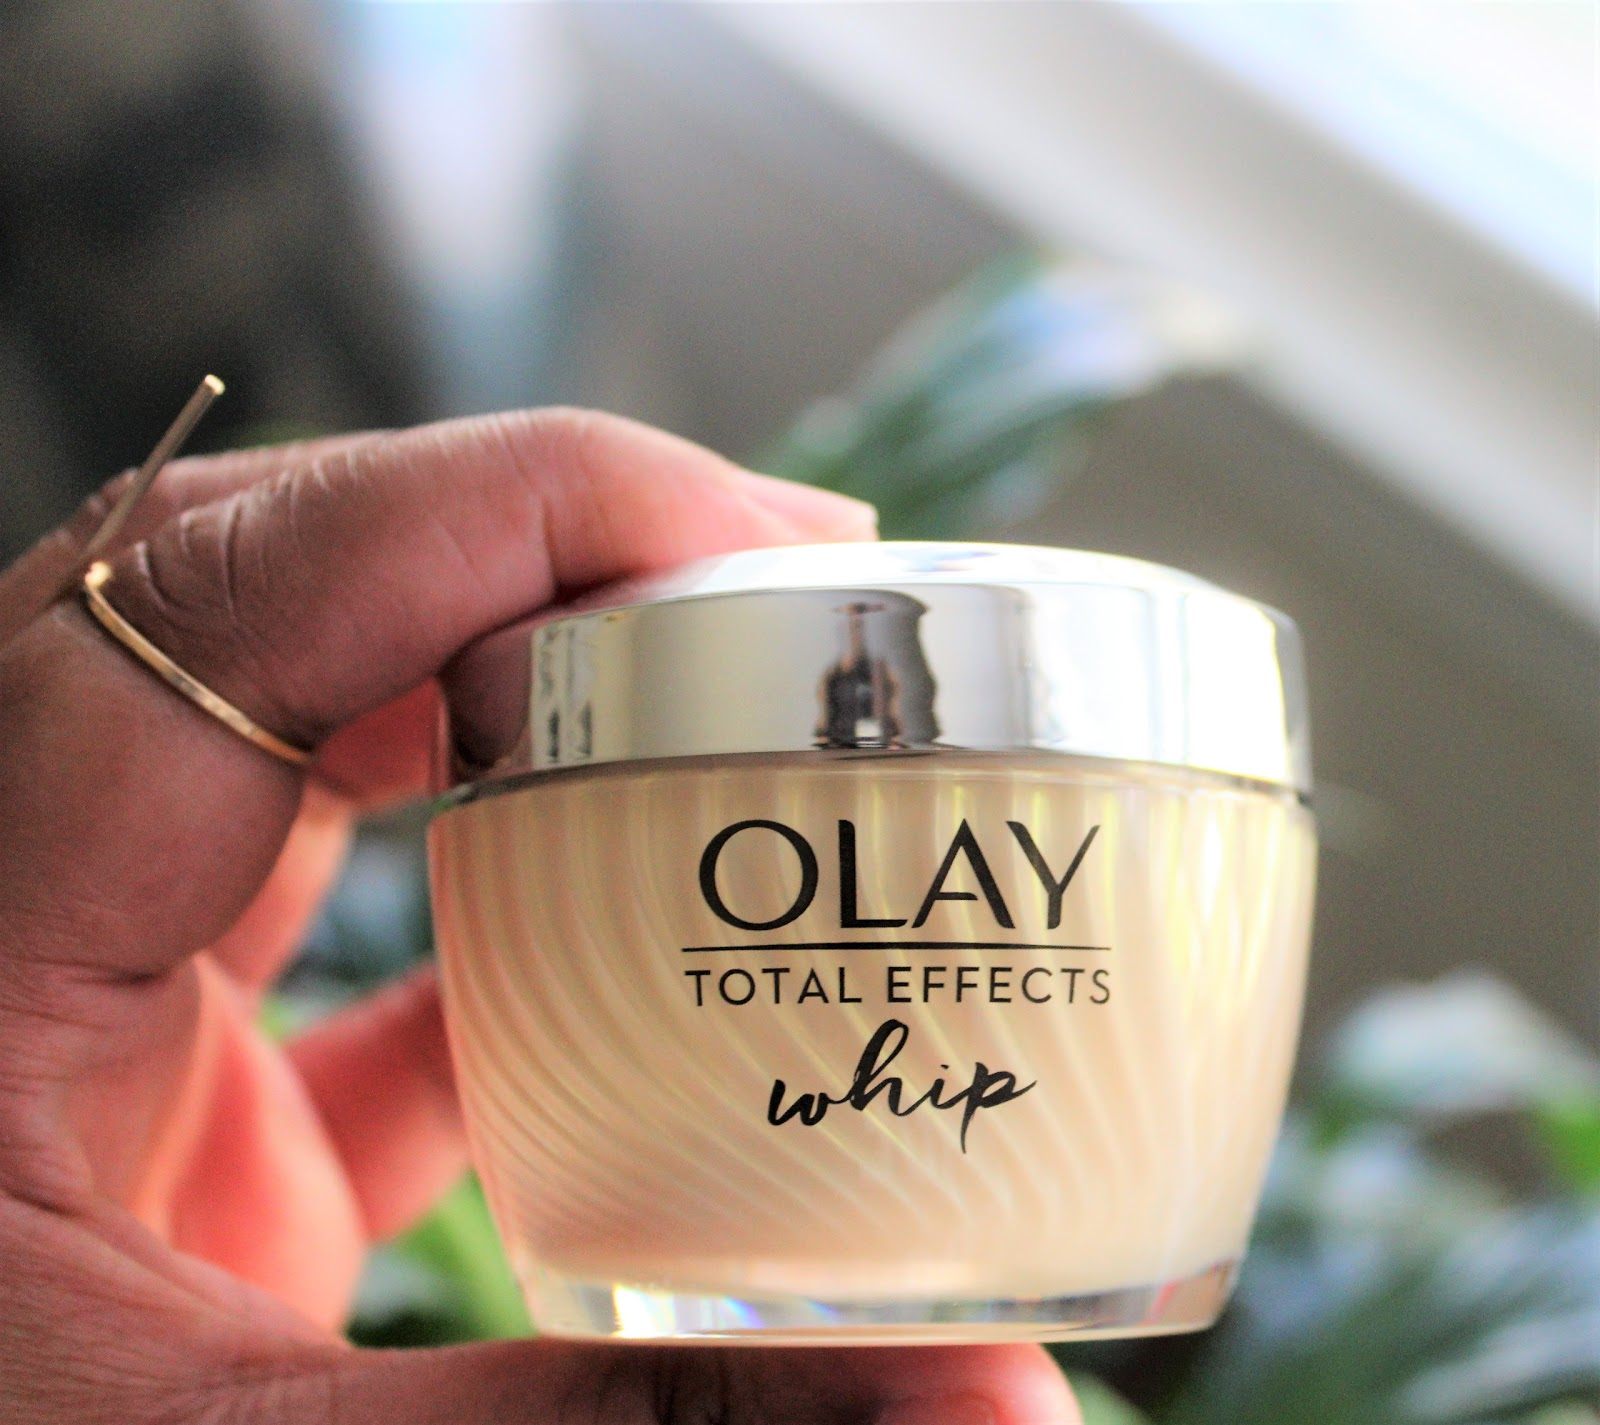 Olay Whip is My Combination Skin's New BFF